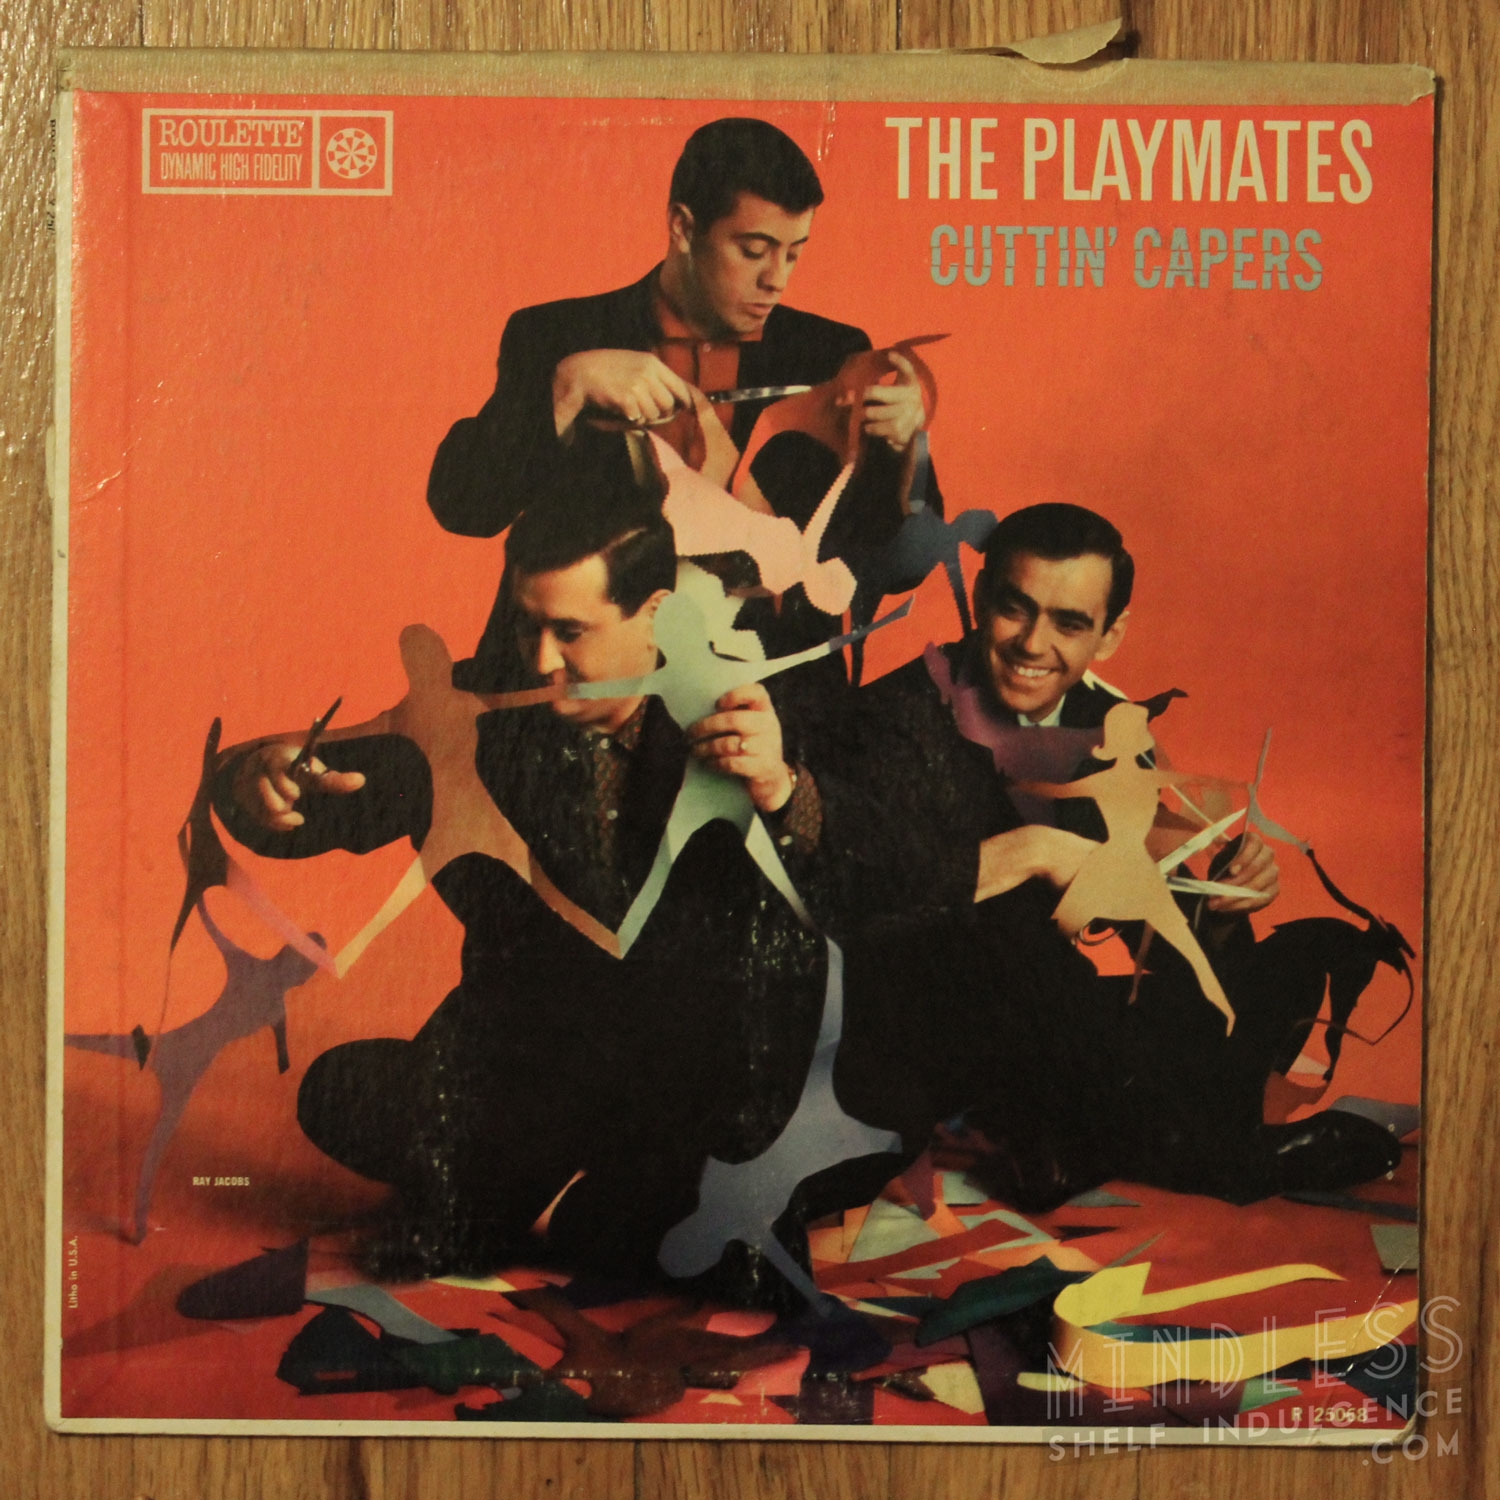 The Playmates Cuttin' Capers LP